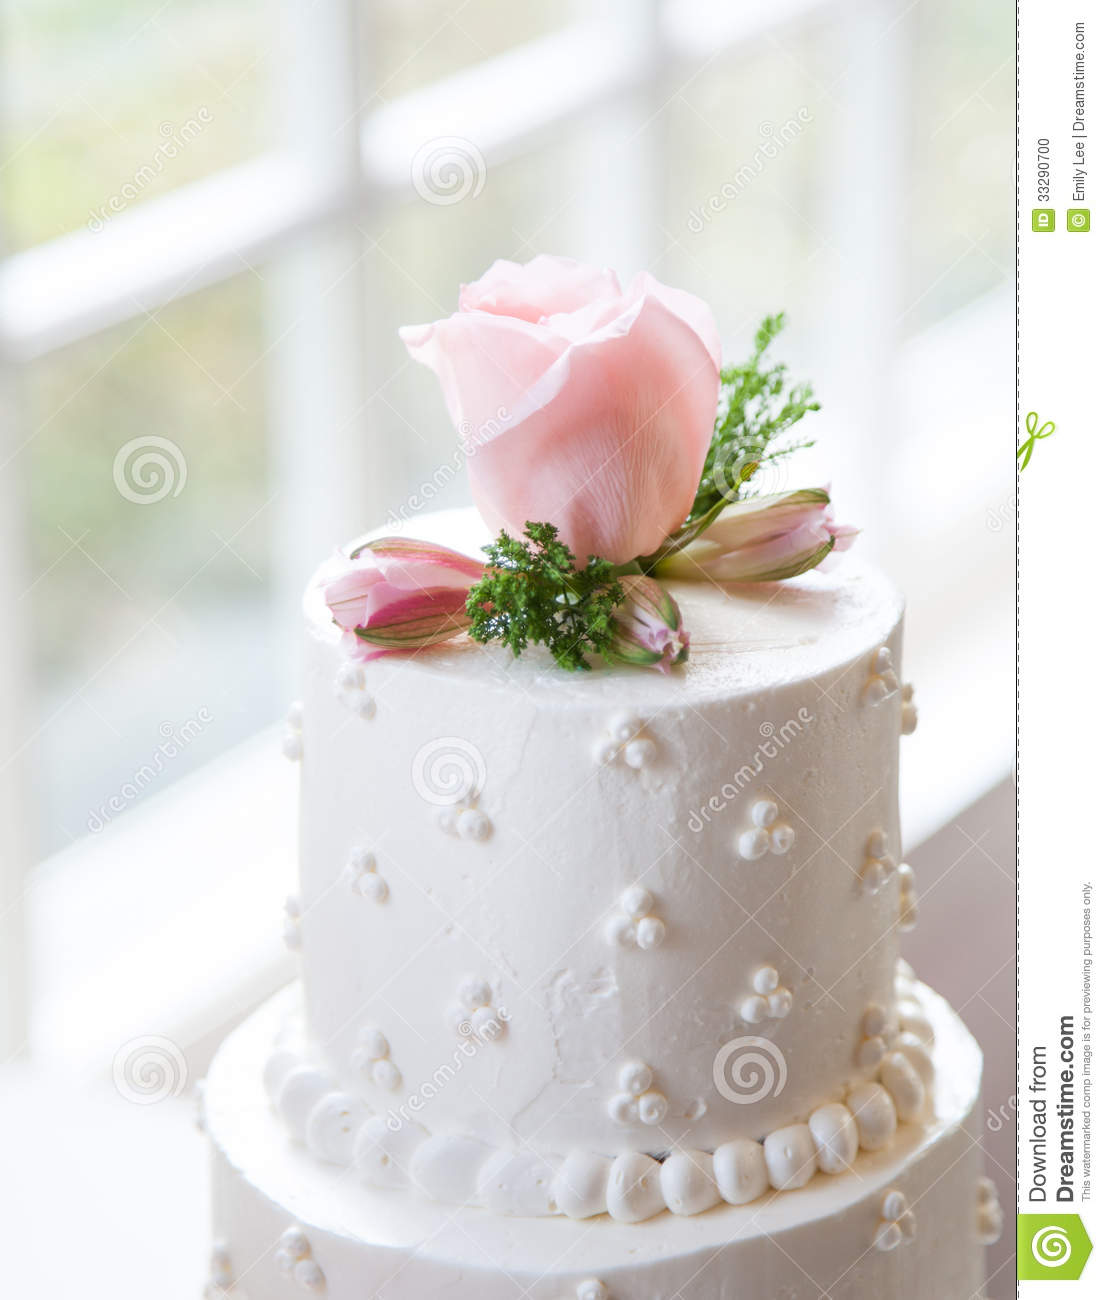 Simple, Elegant Wedding Cake Stock Photo 33290700 - Megapixl